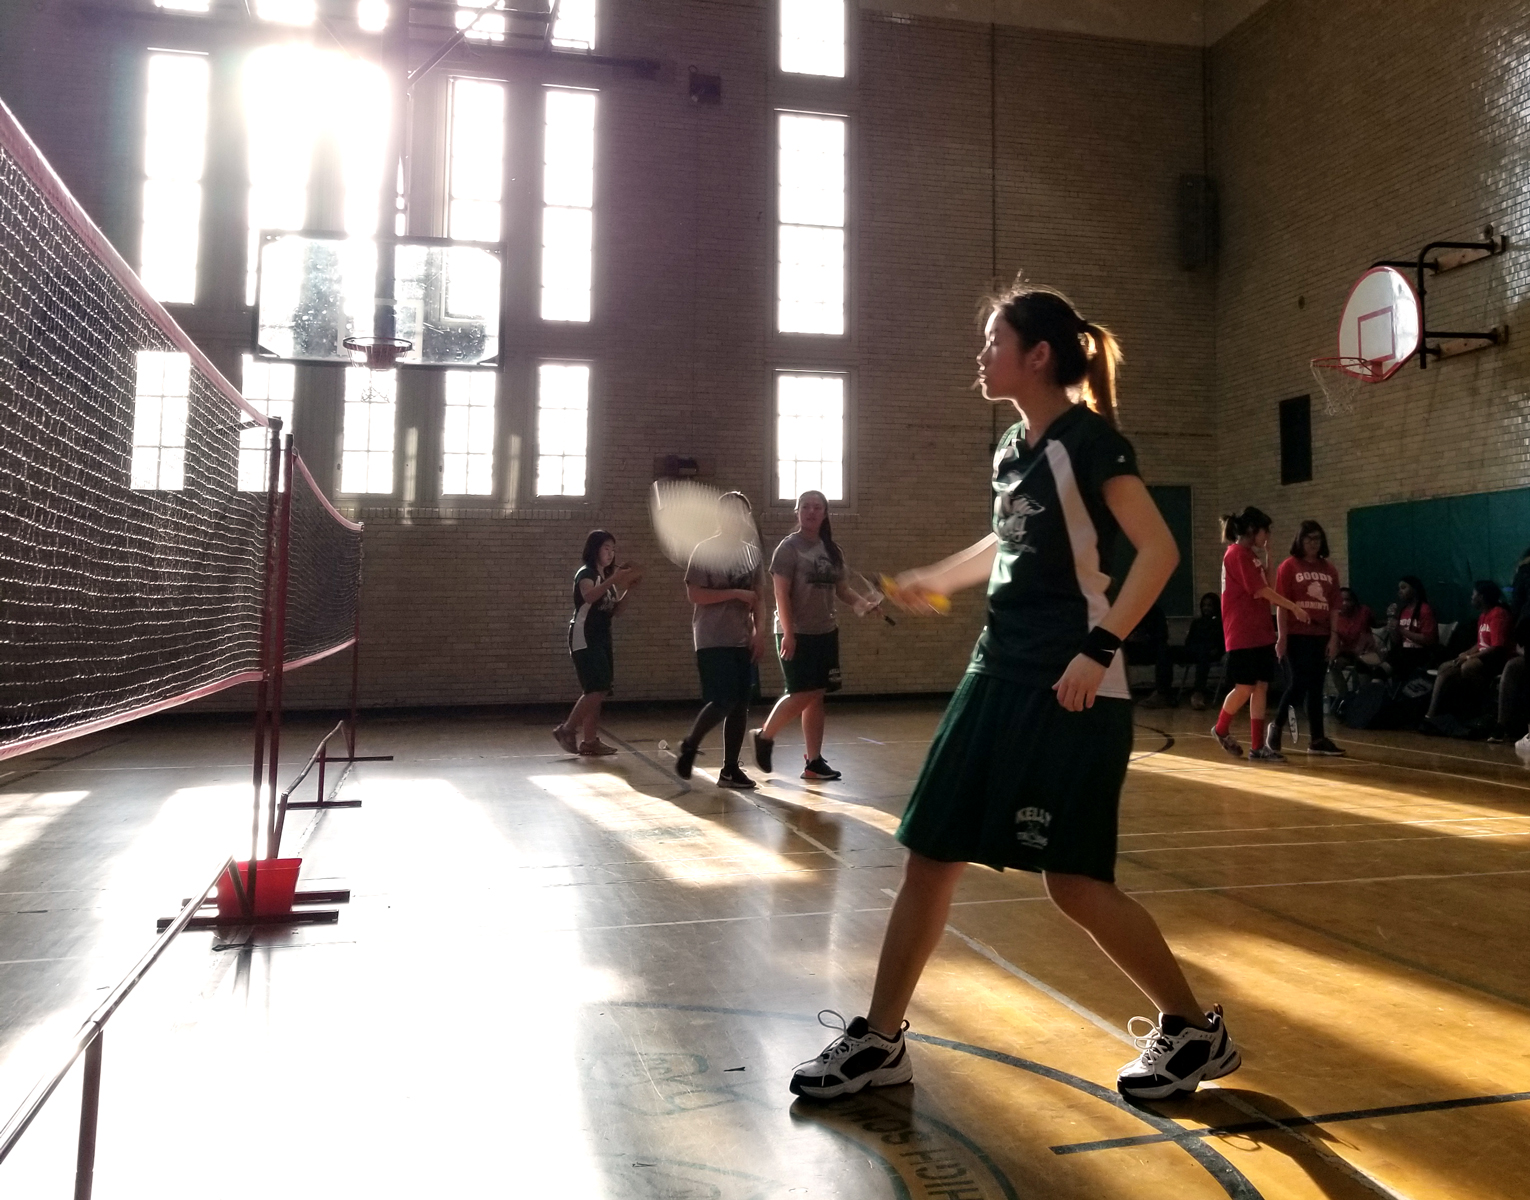 Kelly High School badminton player Ashley Liang competes against students from Goode Academy. (Linda Lutton/WBEZ)